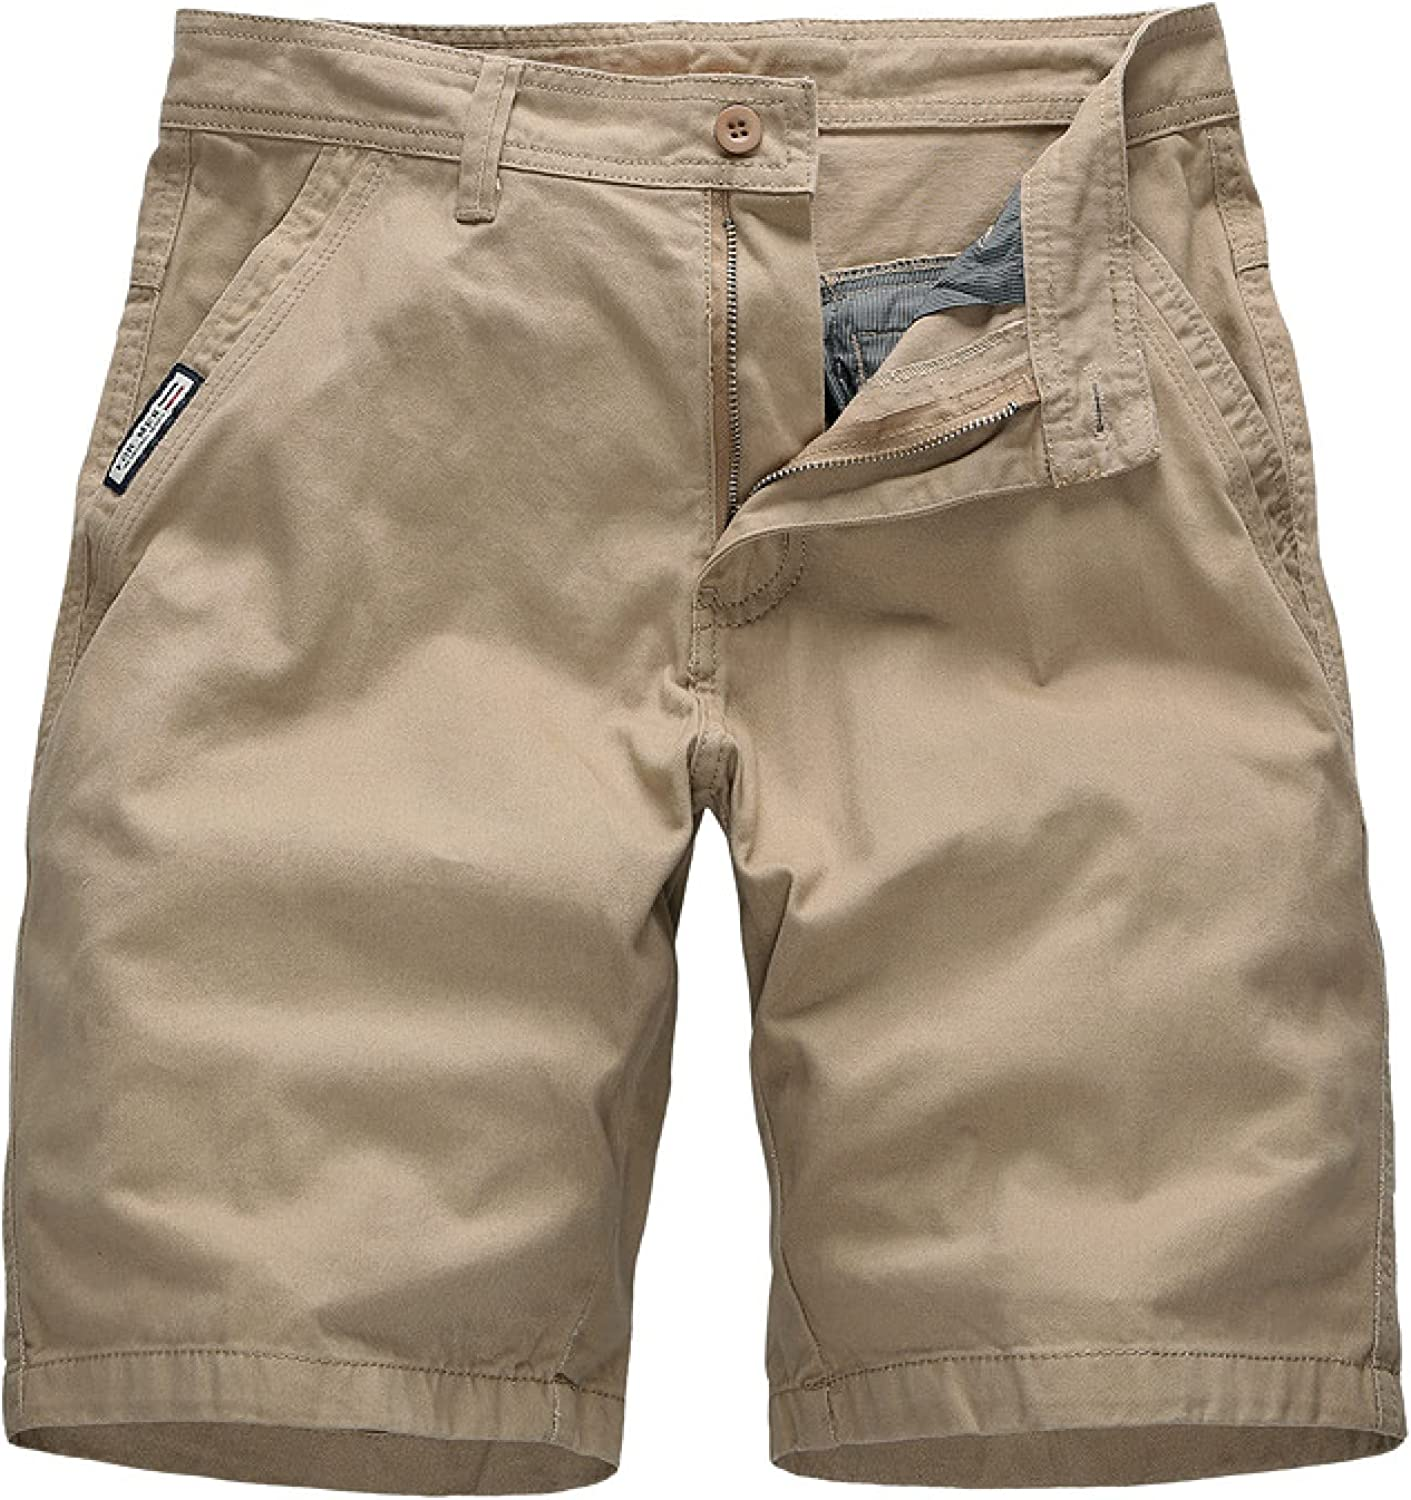 Men's Classic Regular Fit Shorts Ligh Don't miss the campaign Solid Casual Color Fashion 2021 new